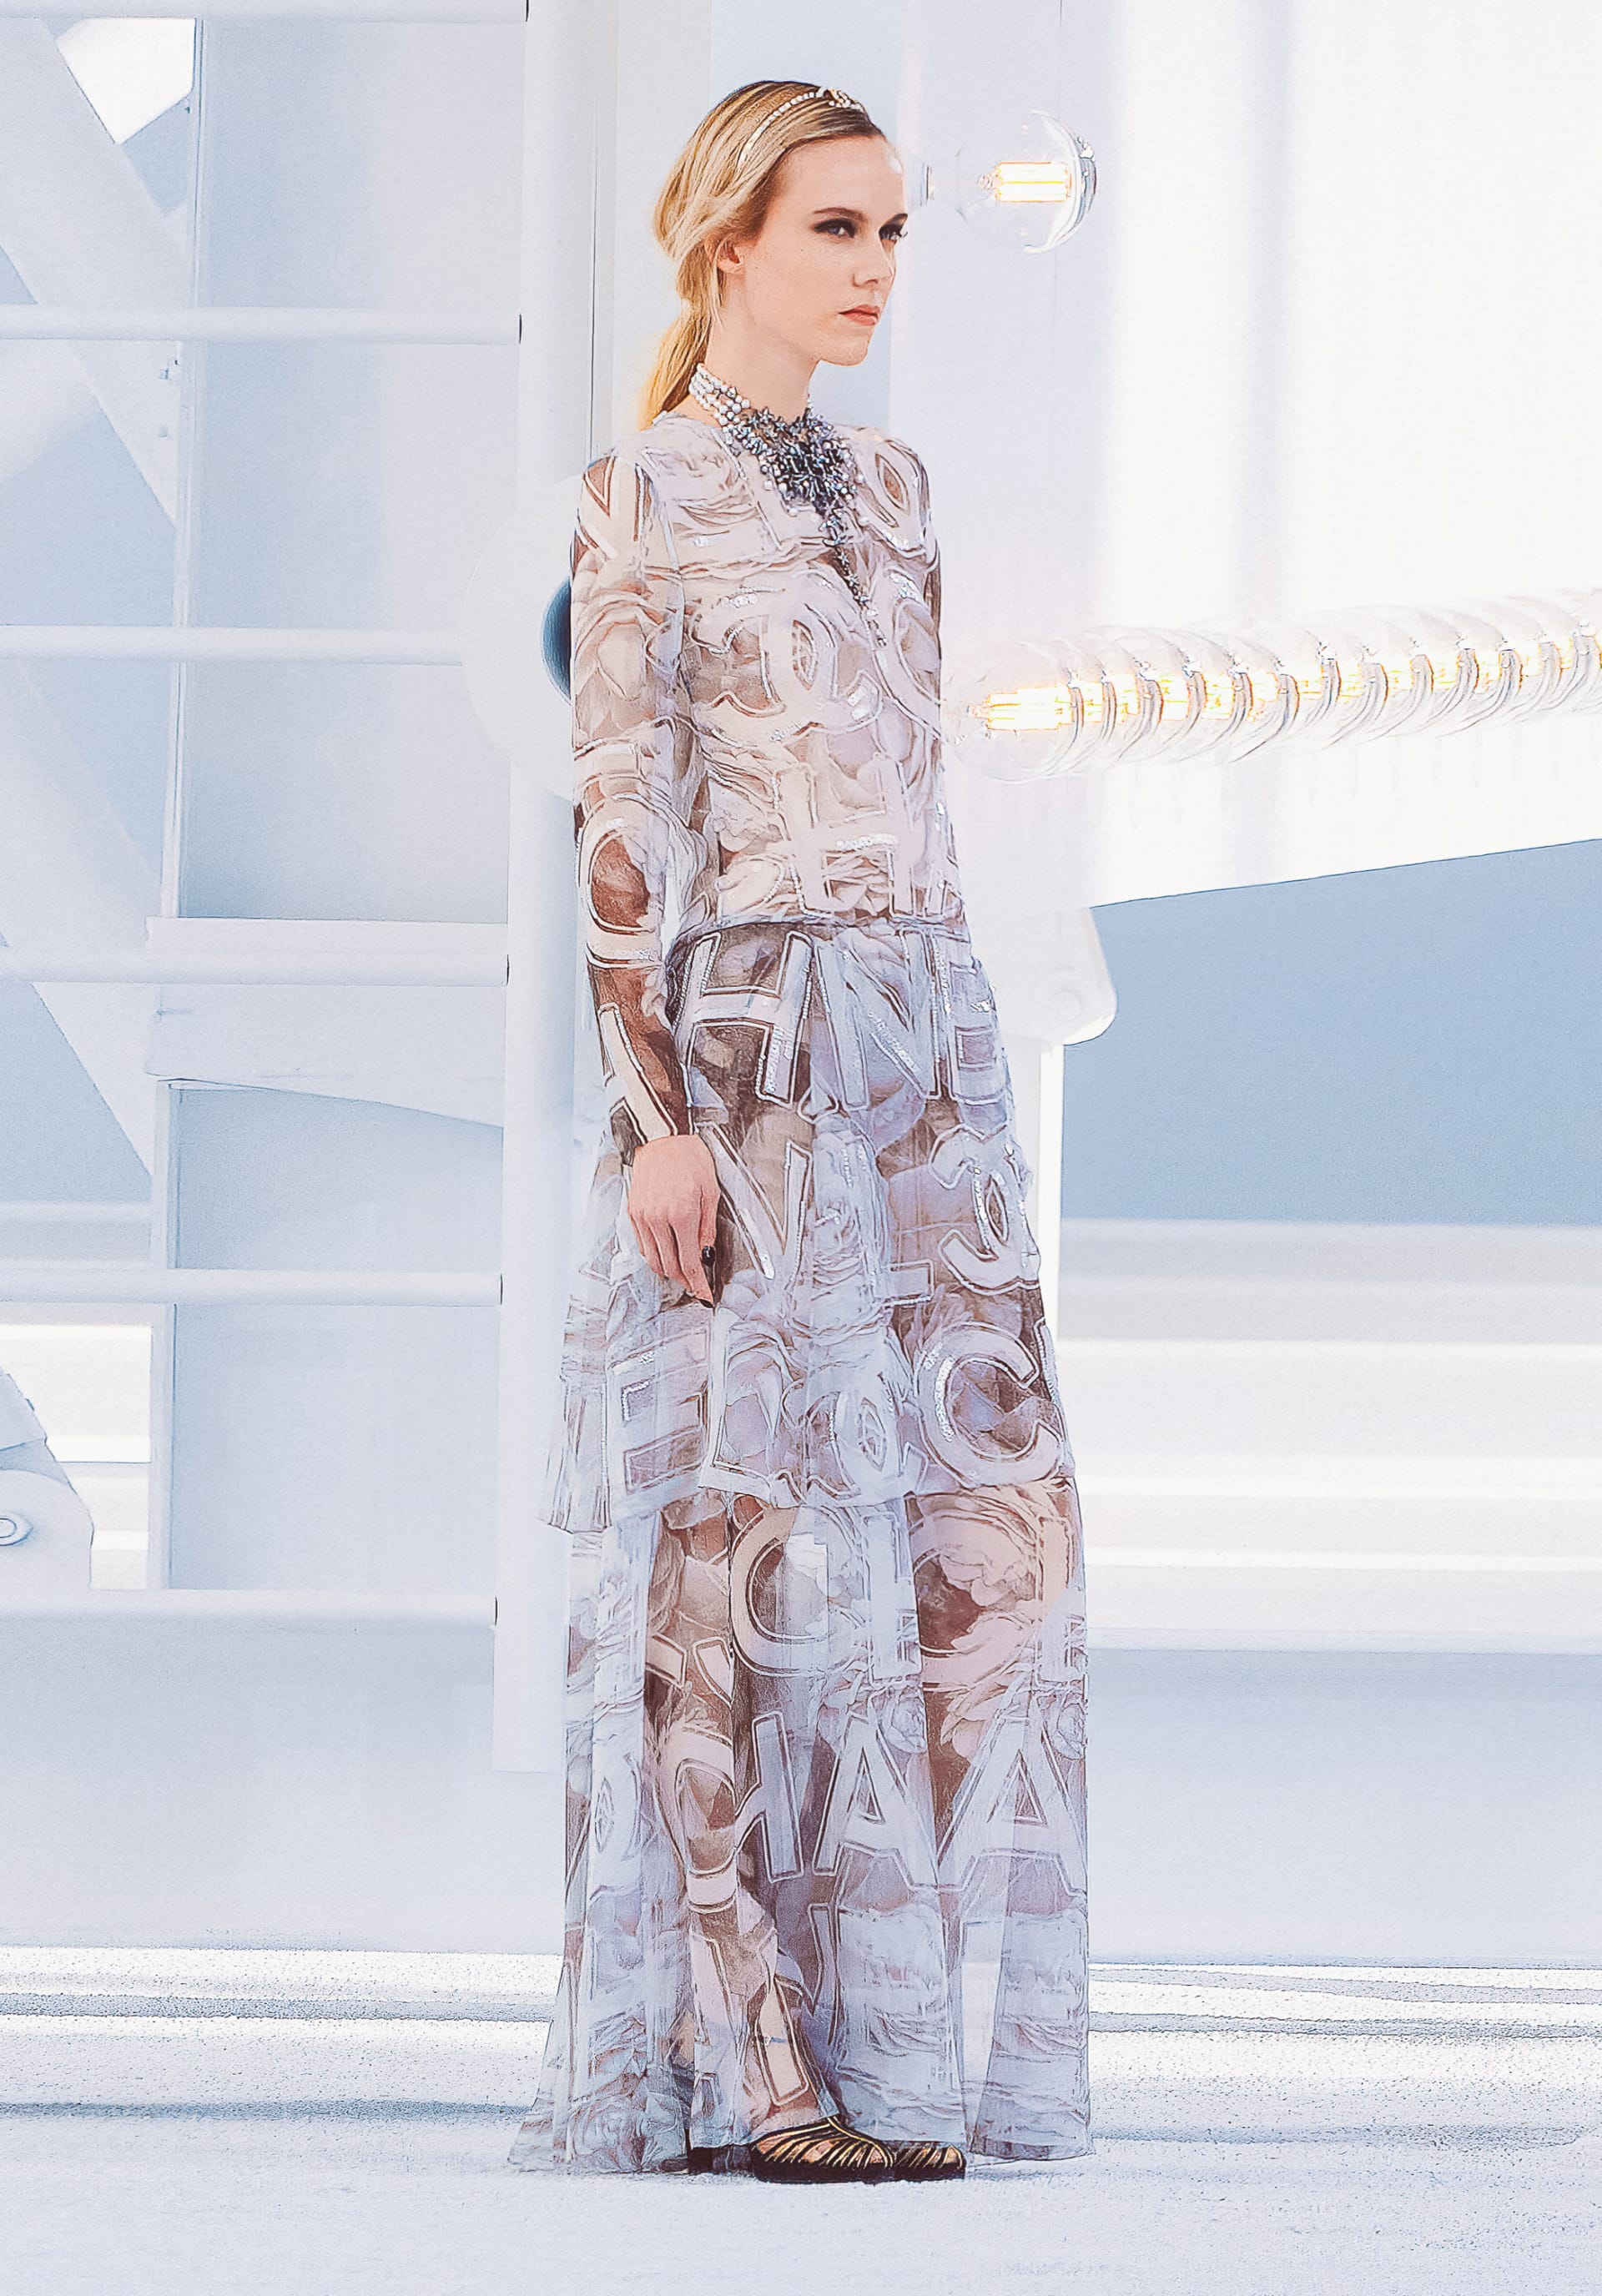 View 1 - Look69 - Spring-Summer 2021 - see full sized version